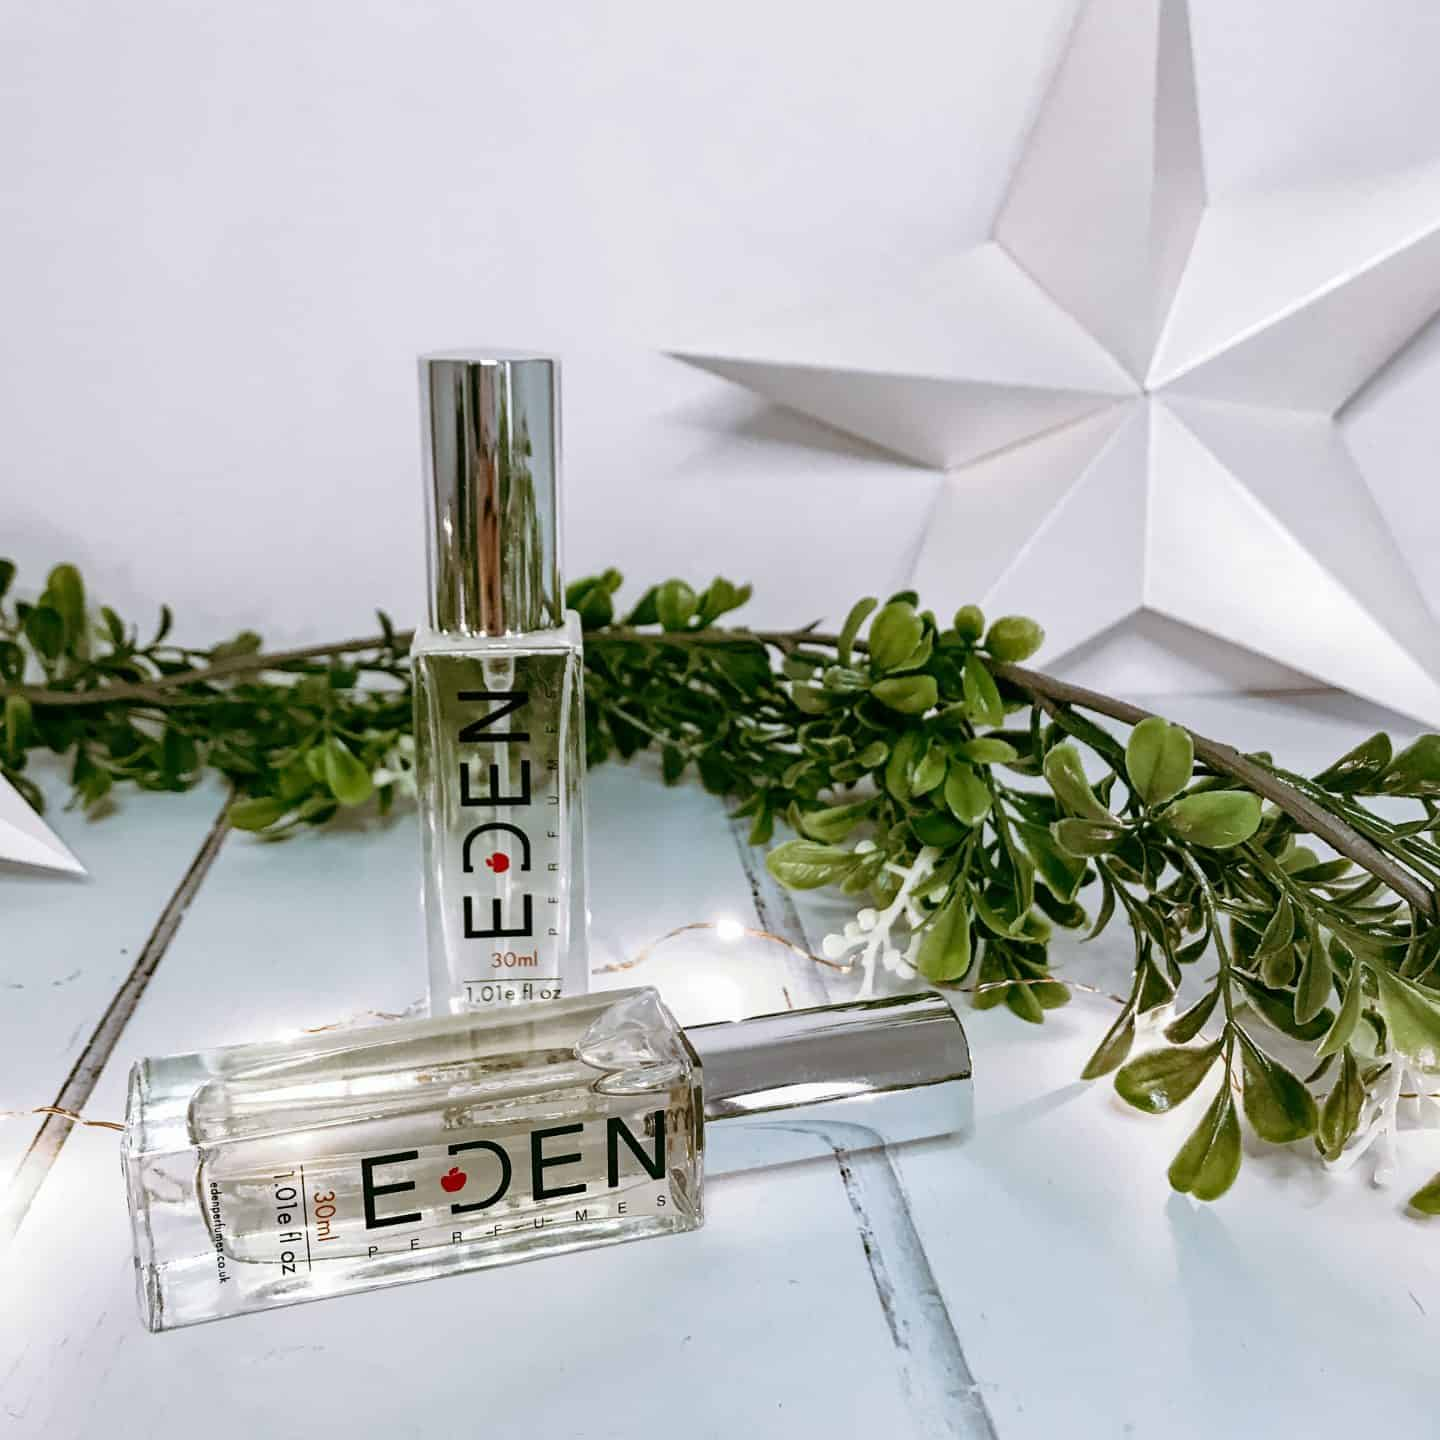 Eden eco friendly vegan fragrances